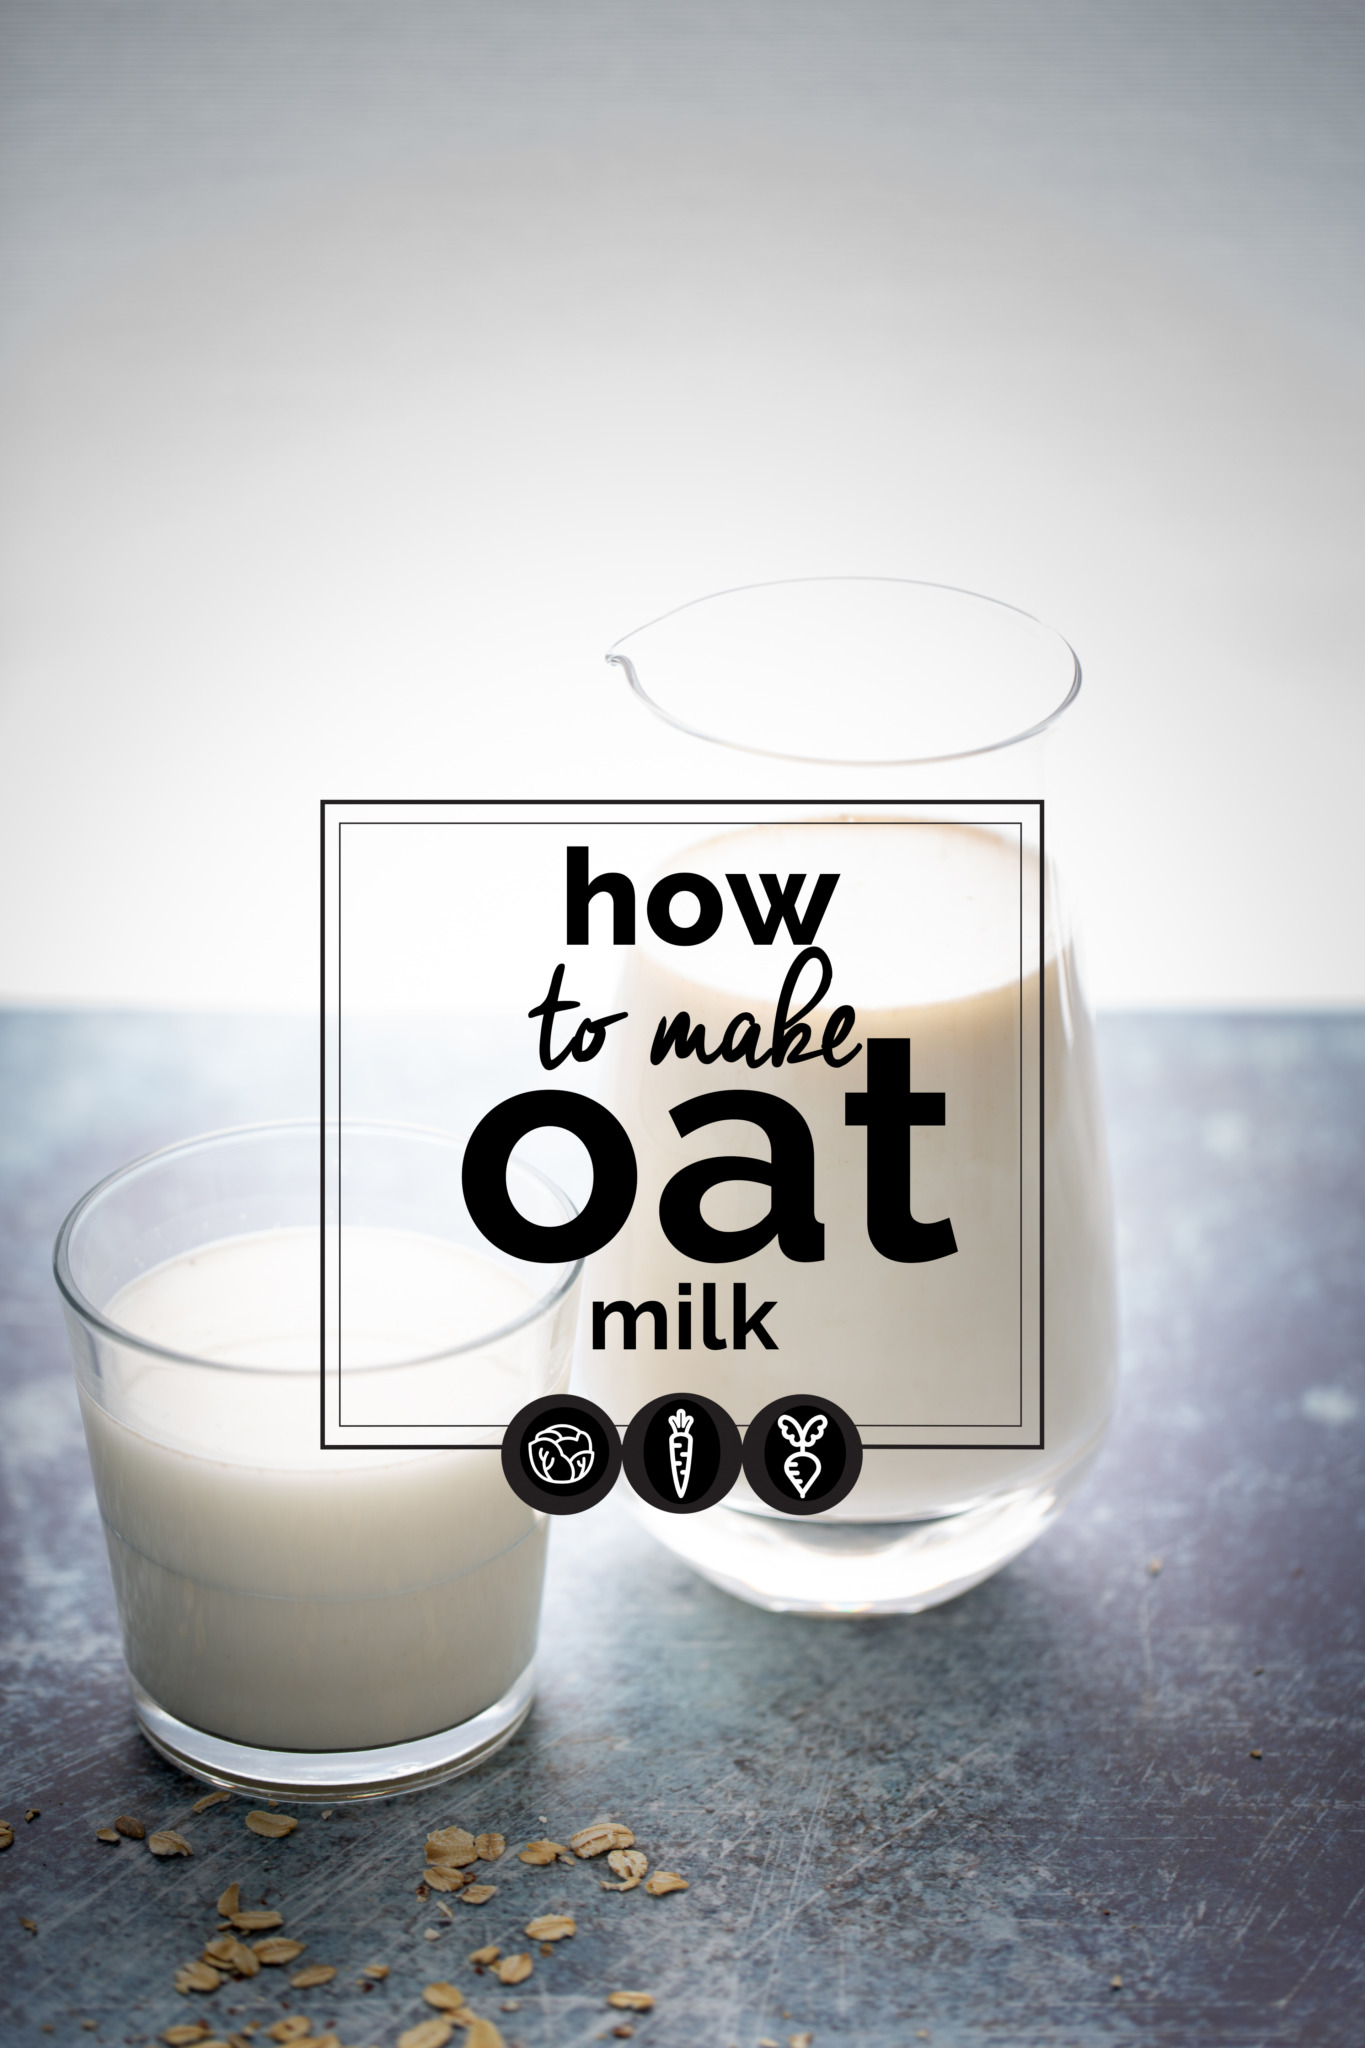 This recipe for oat milk is quick, easy and it only has two ingredients. You could have it plain or flavor it as you wish. #vegan,#plantbased milk